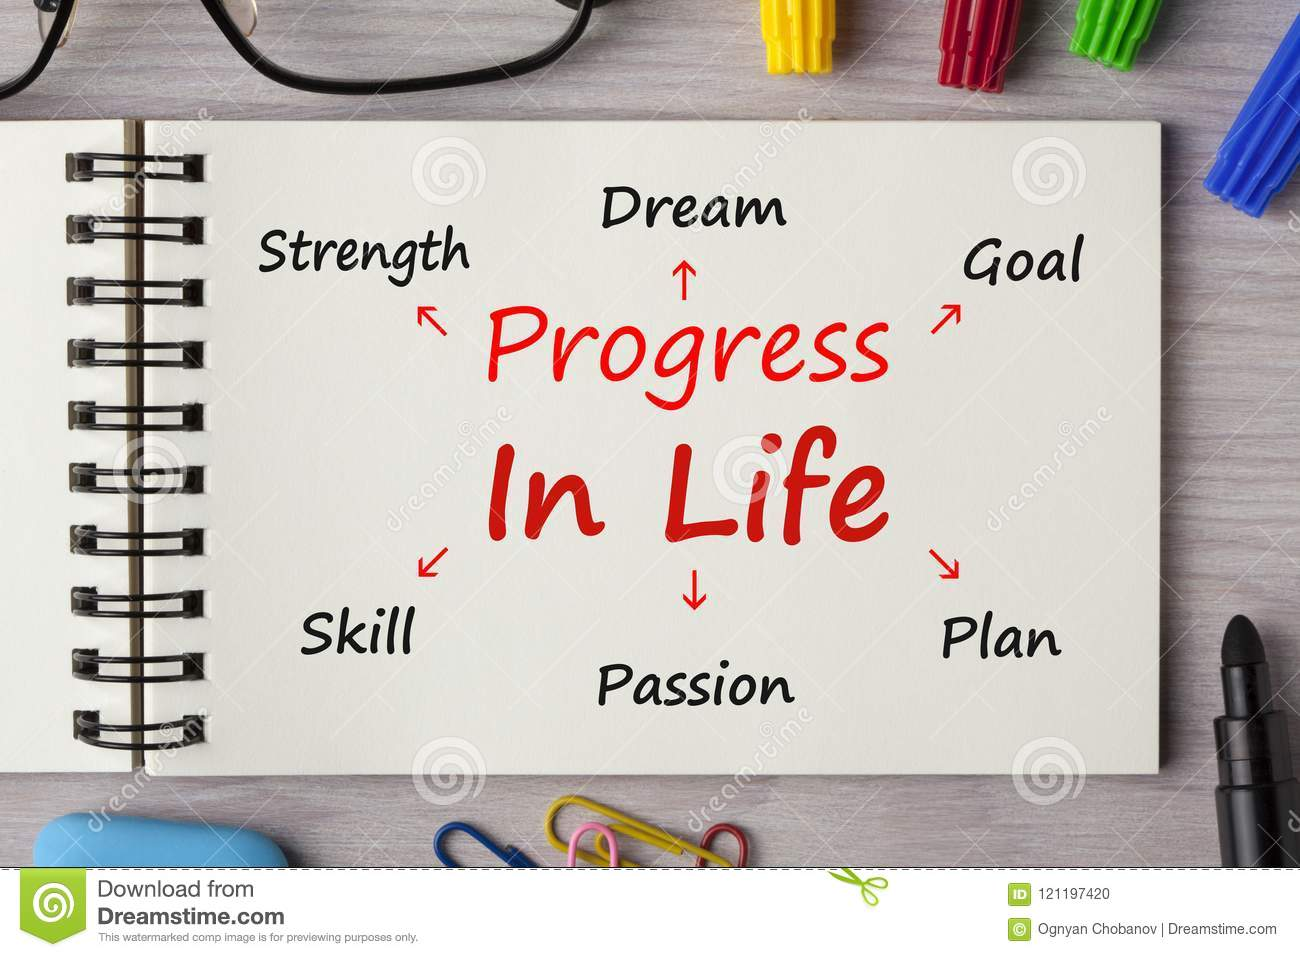 how to progress in life